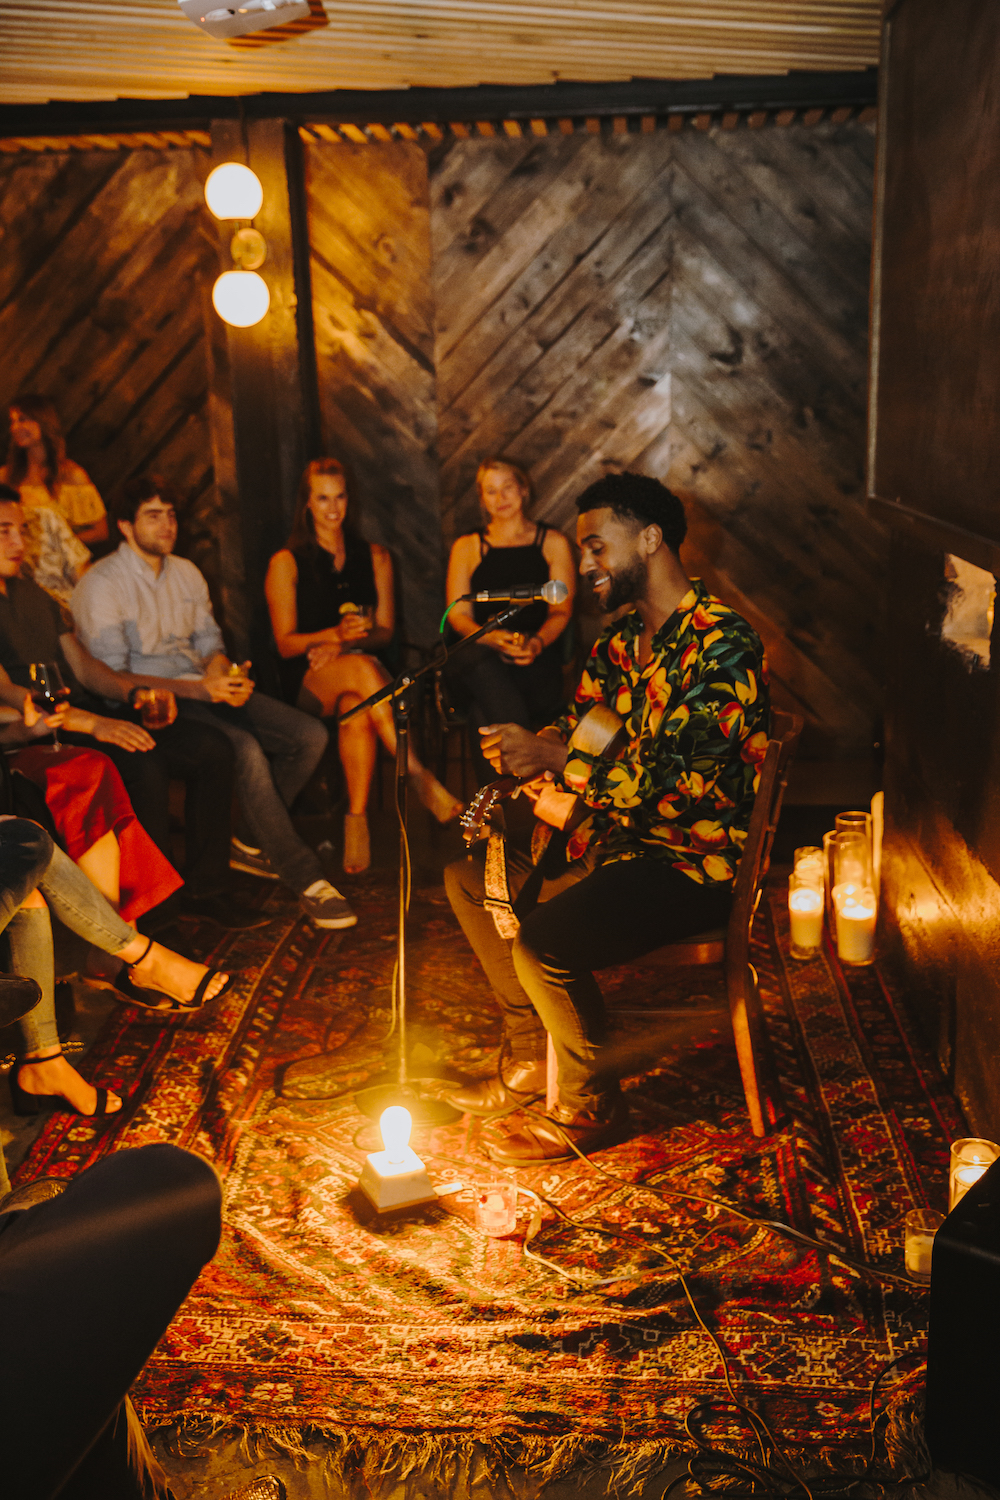 SOUND SESSION - an intimate music experience